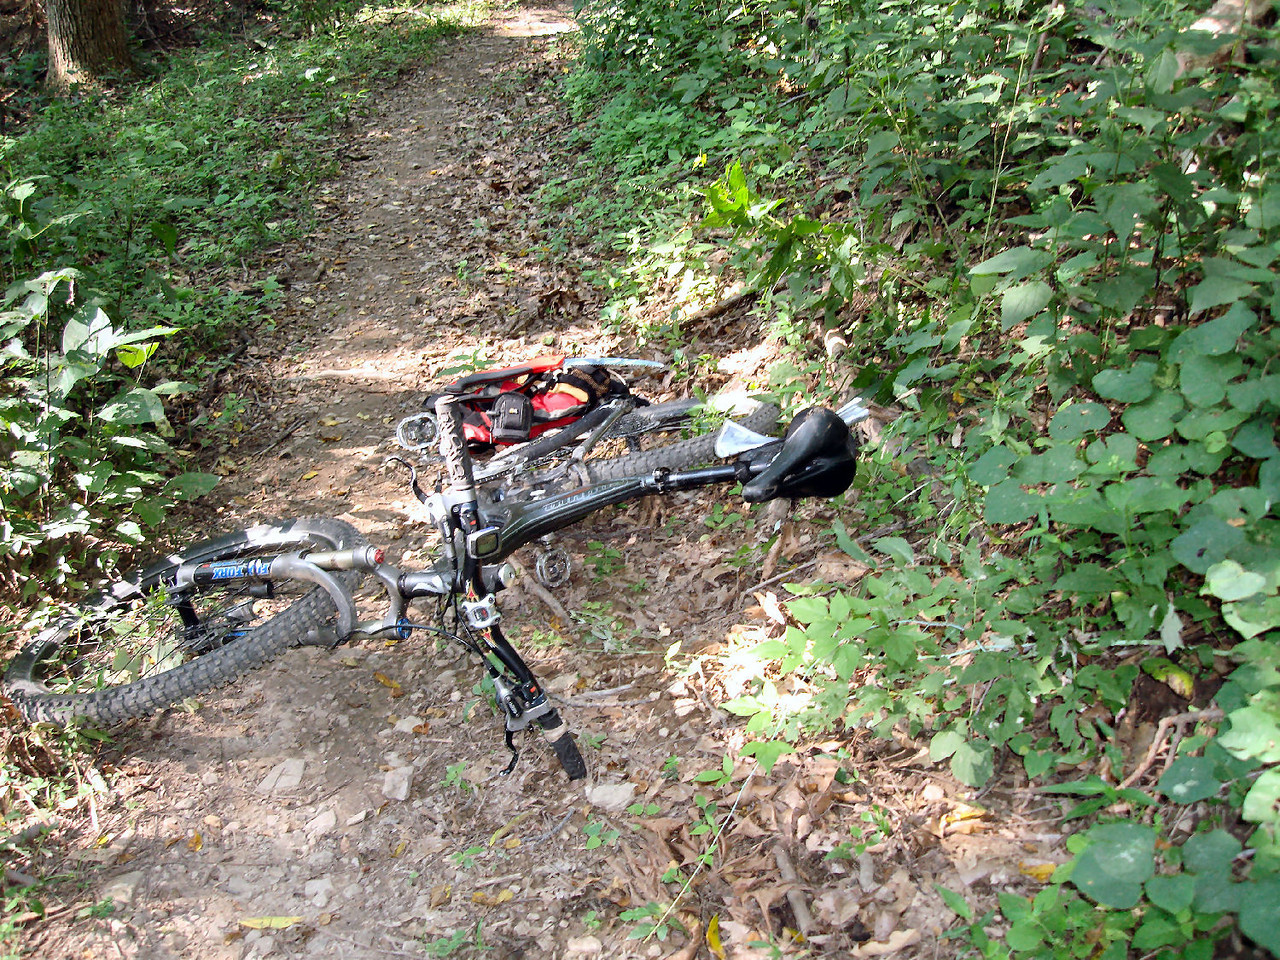 Possible, rider impalement on trail - After